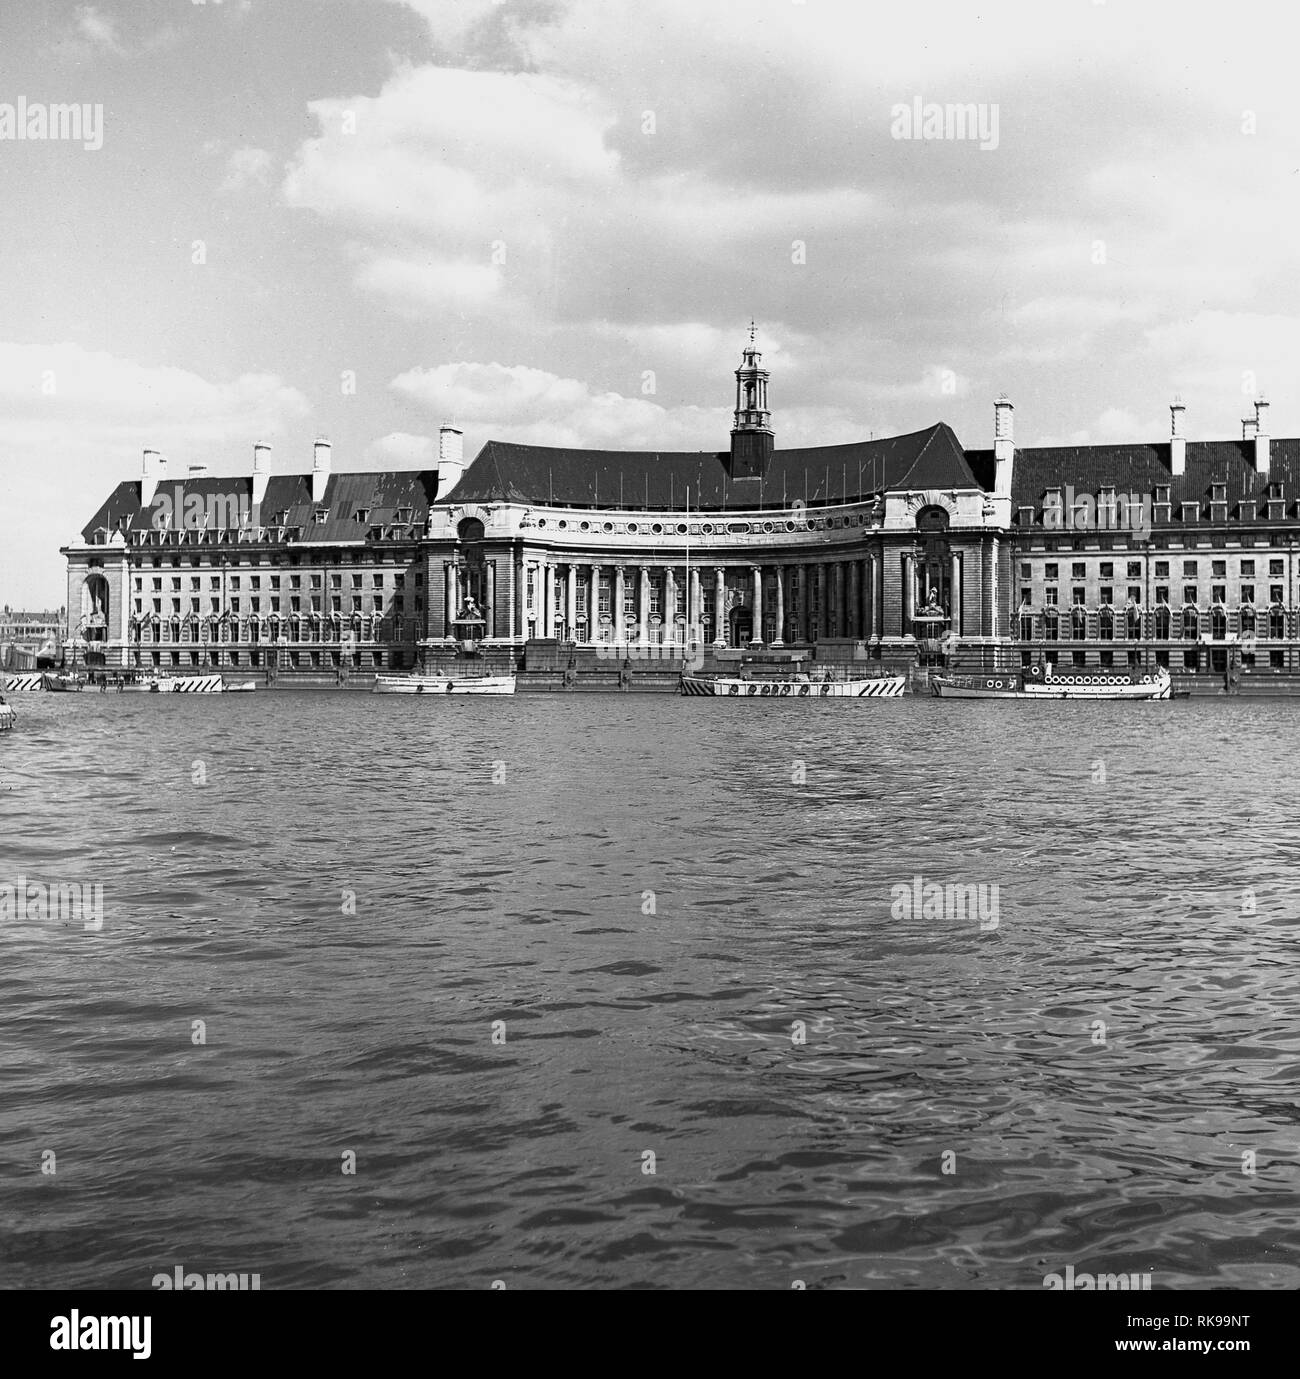 1950s, a view of the grand building of County Hall, home in this era of the Greater London Council ( GLC) on the south bank of the river Thames, London, England, - Stock Image